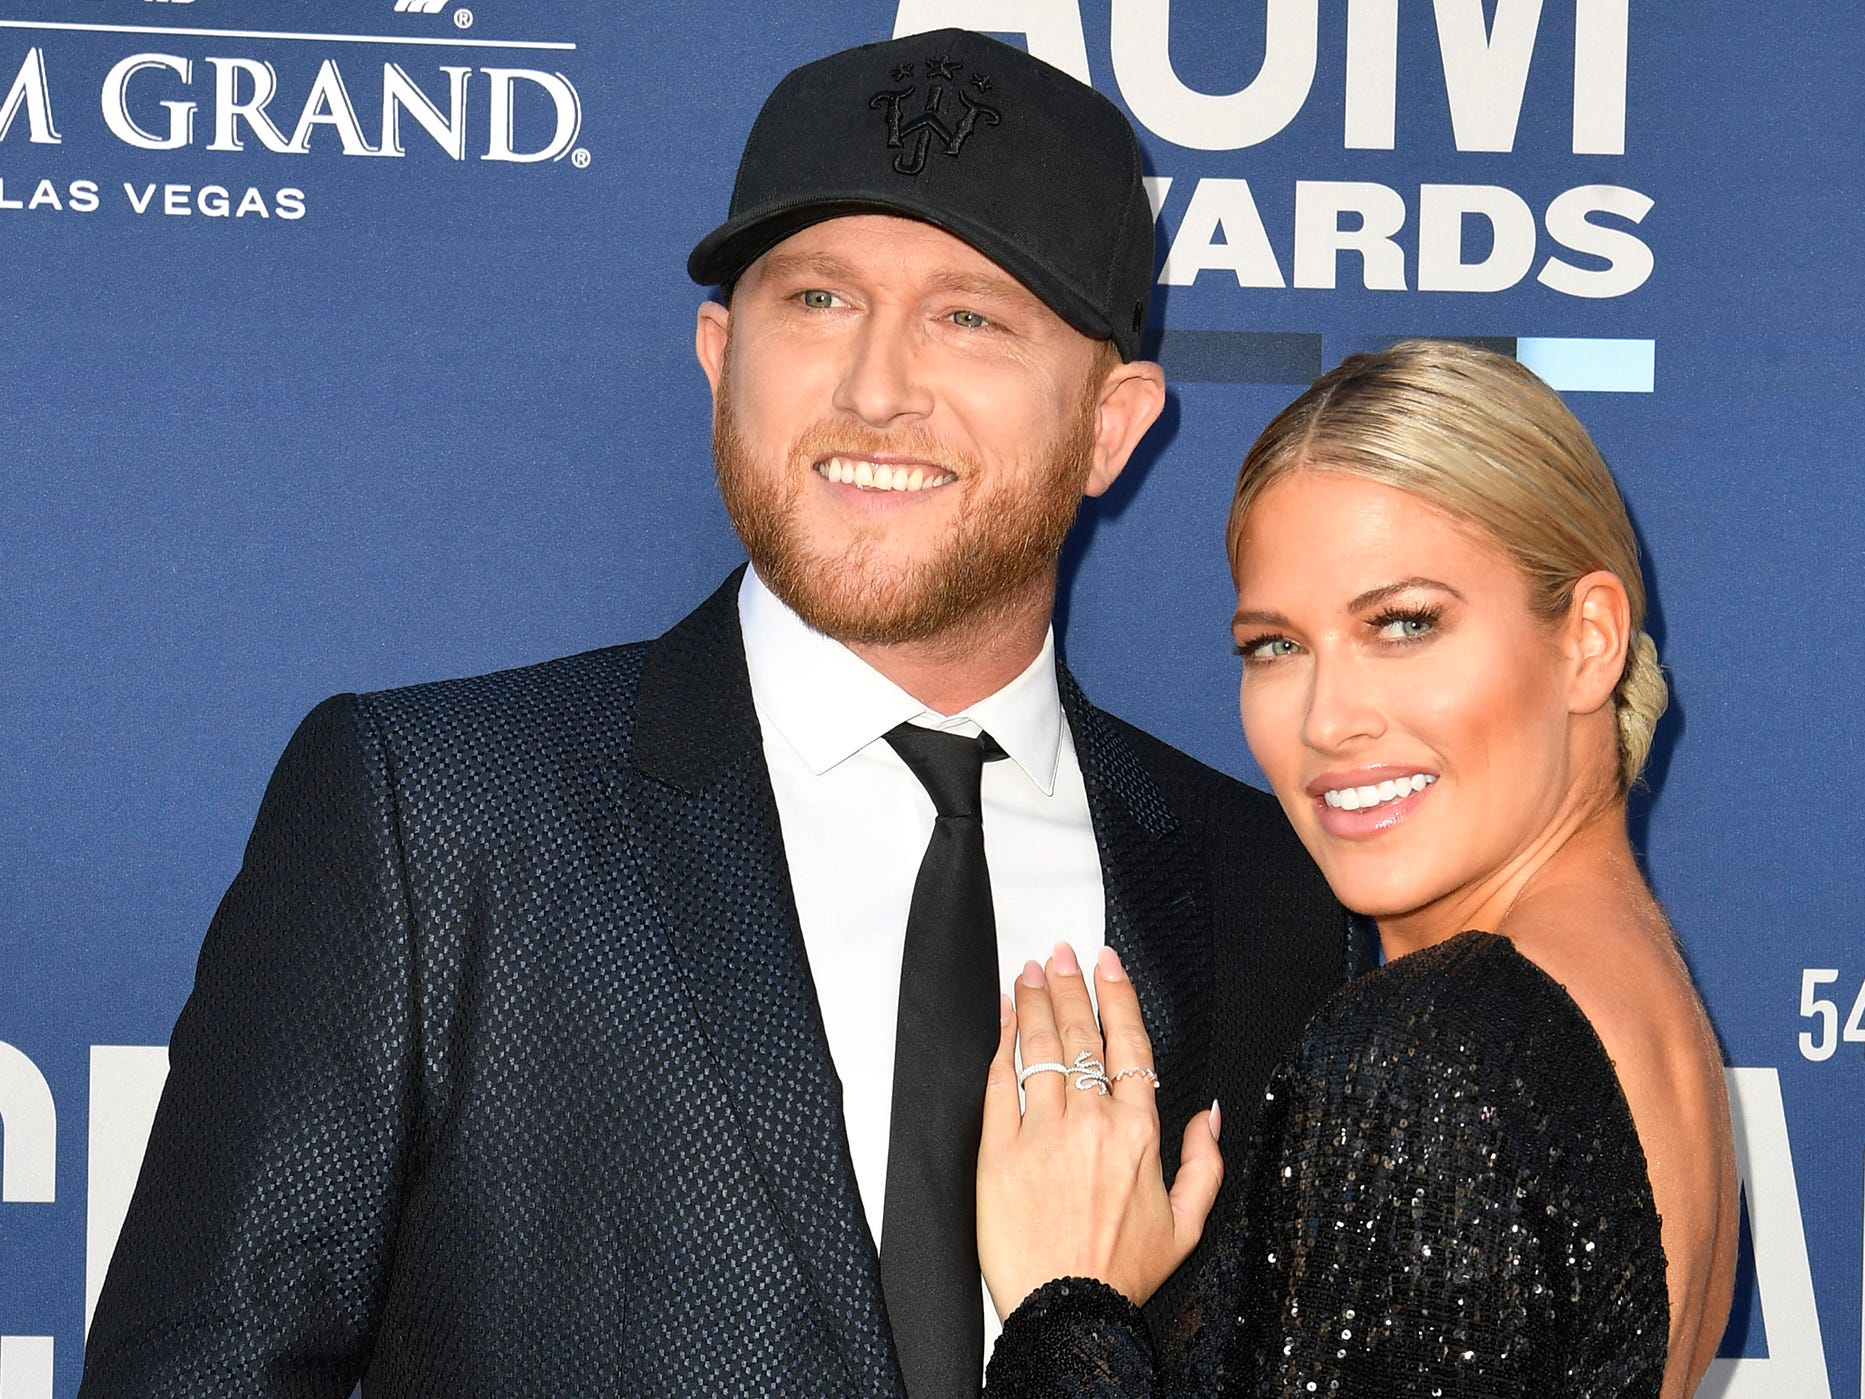 Cole Swindell, left, with Barbie Blank, walk the red carpet at the 54TH Academy of Country Music Awards Sunday, April 7, 2019, in Las Vegas, Nev.